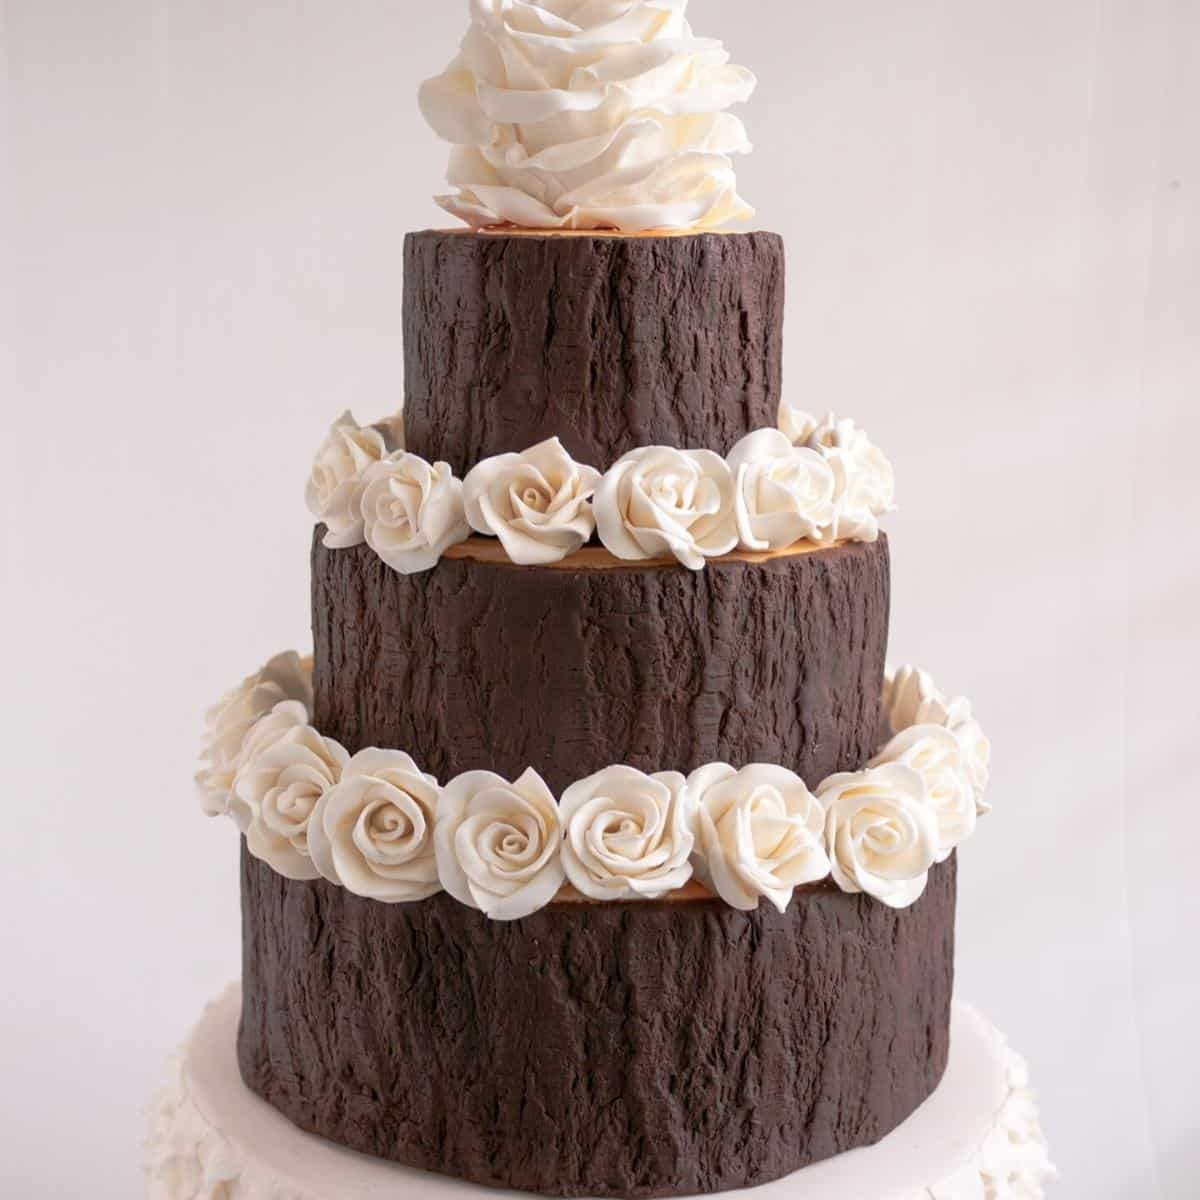 A three tier cake frosted with modeling chocolate.